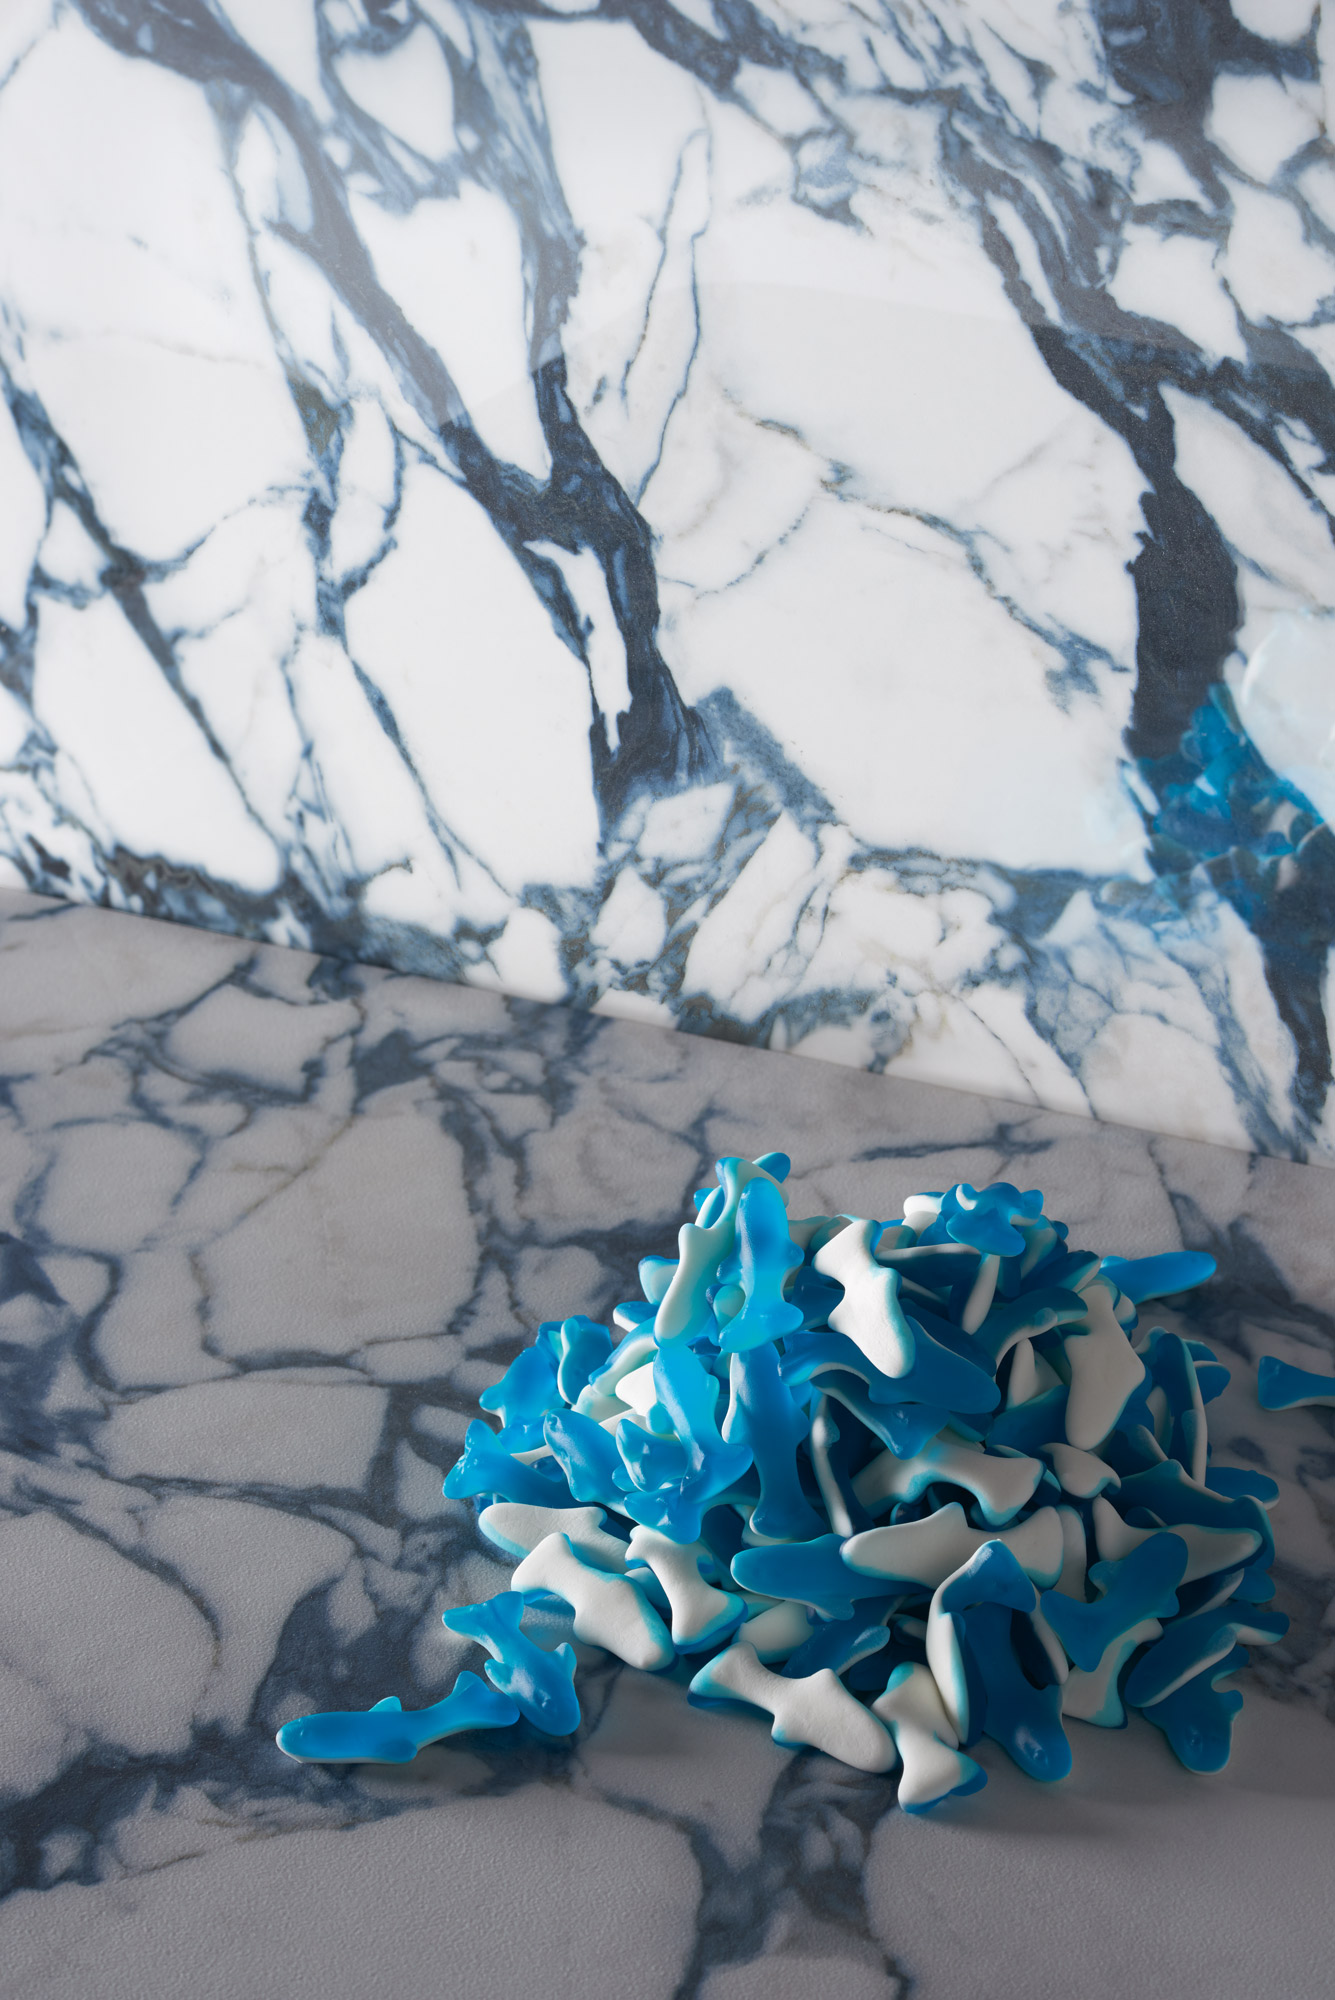 Wall Pulp Blue Double Polished - Floor Pulp Blue Raw